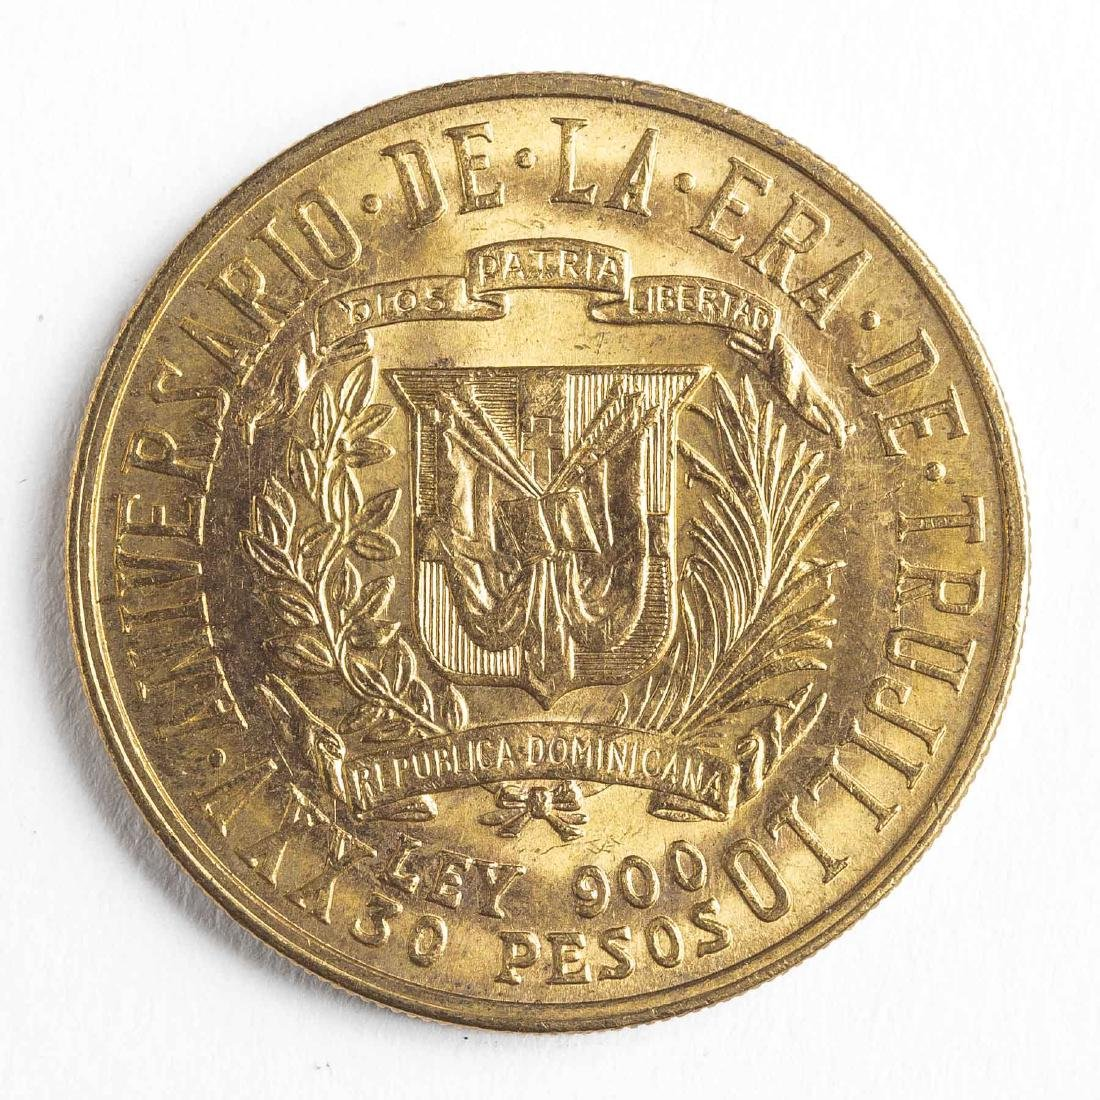 1955 30 Pesos Dominican Gold Coin - 2